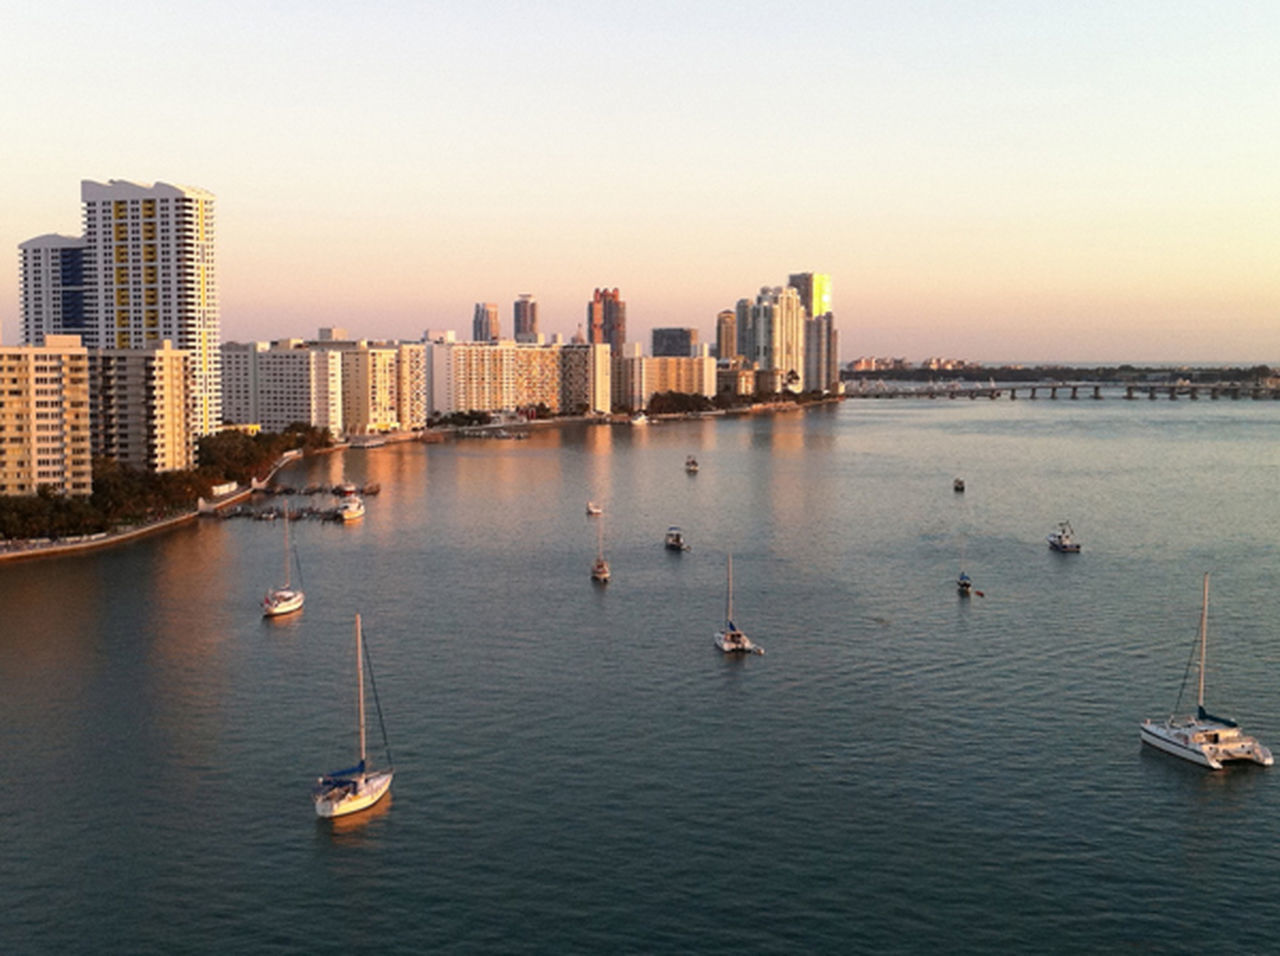 View from Jeane's Beauty In Nature Boat City Cityscape Day Miami Achorage Miami Beach Nature No People Outdoors Sailboats Sailboats At Anchor Scenics Sky Sunset Tranquil Scene Tranquility Urban Skyline Water Waterfront